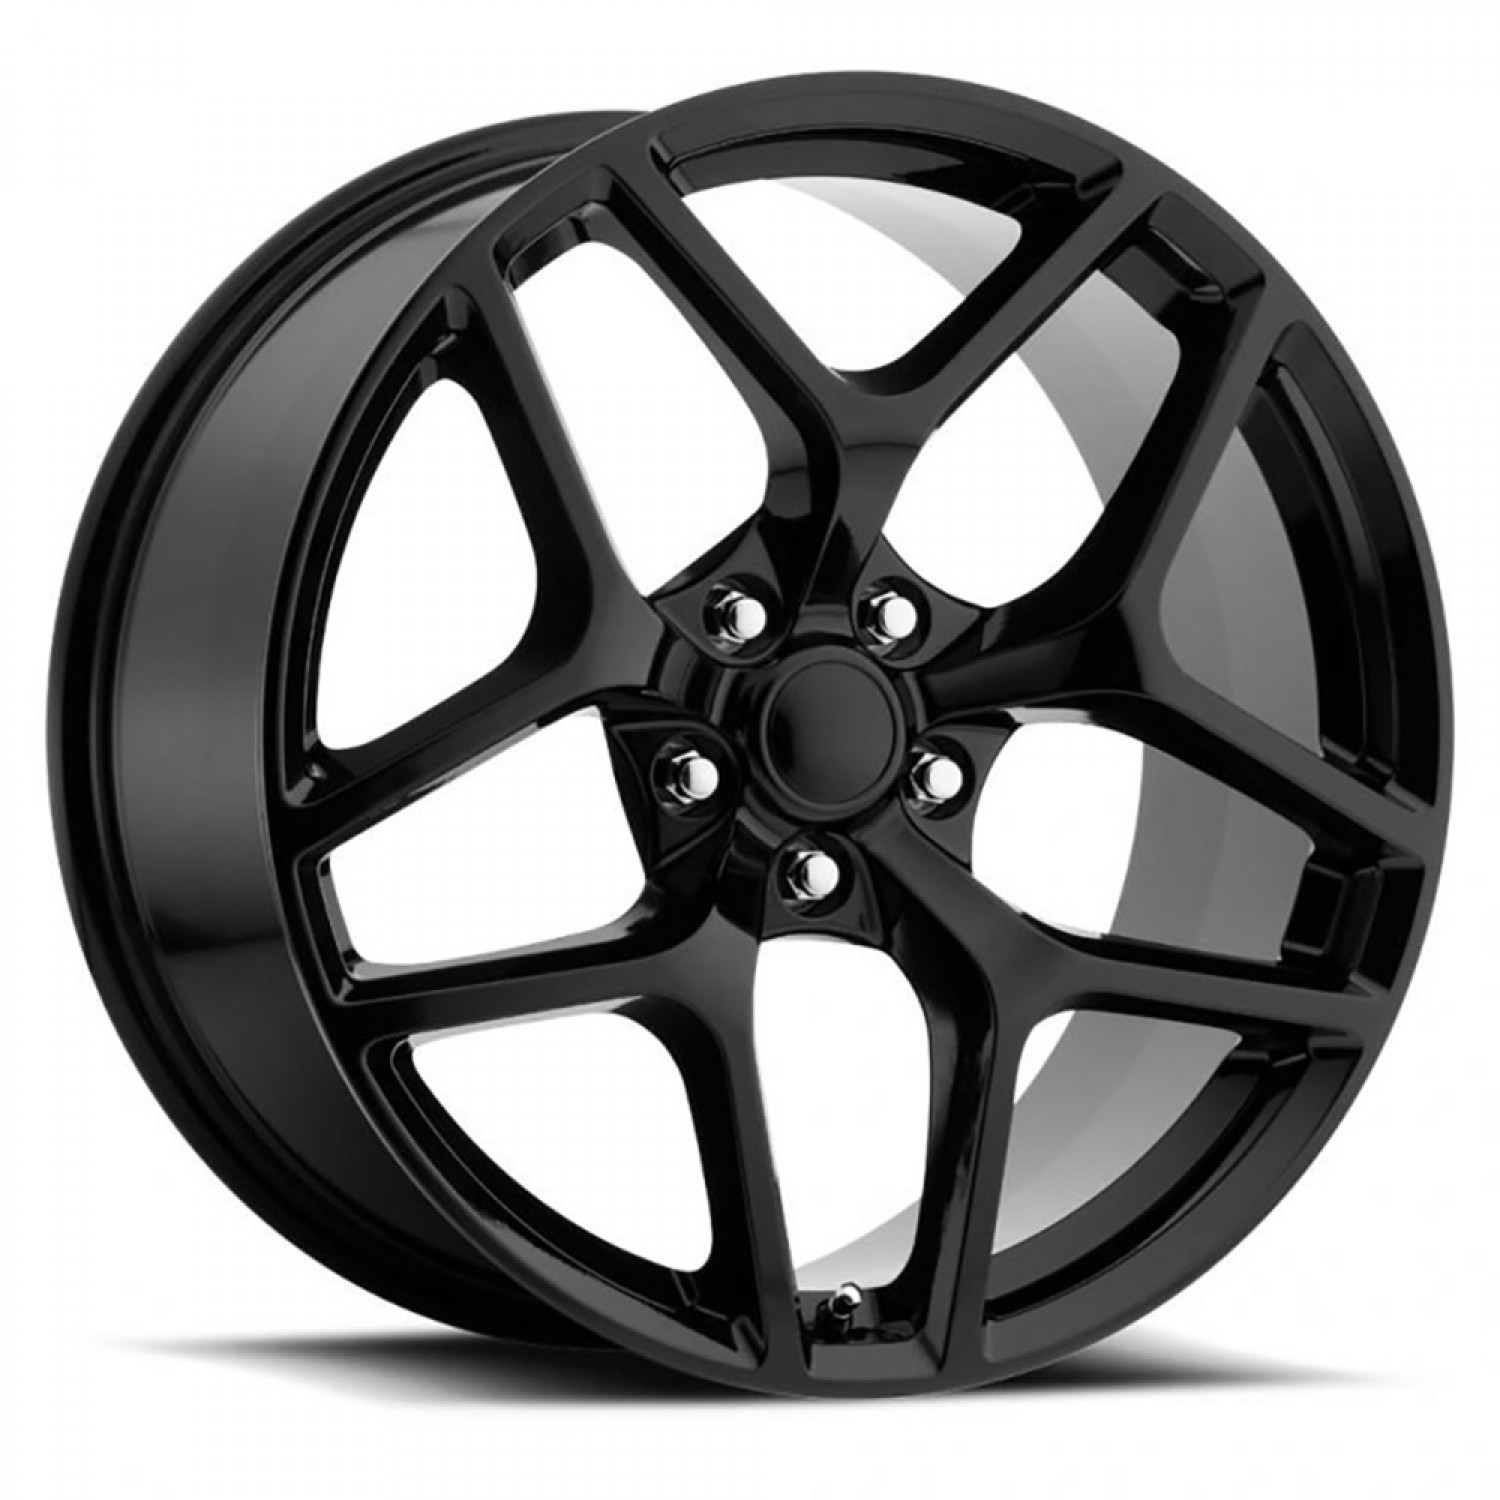 Z28 Camaro Replica Wheels Gloss Black vzn100753